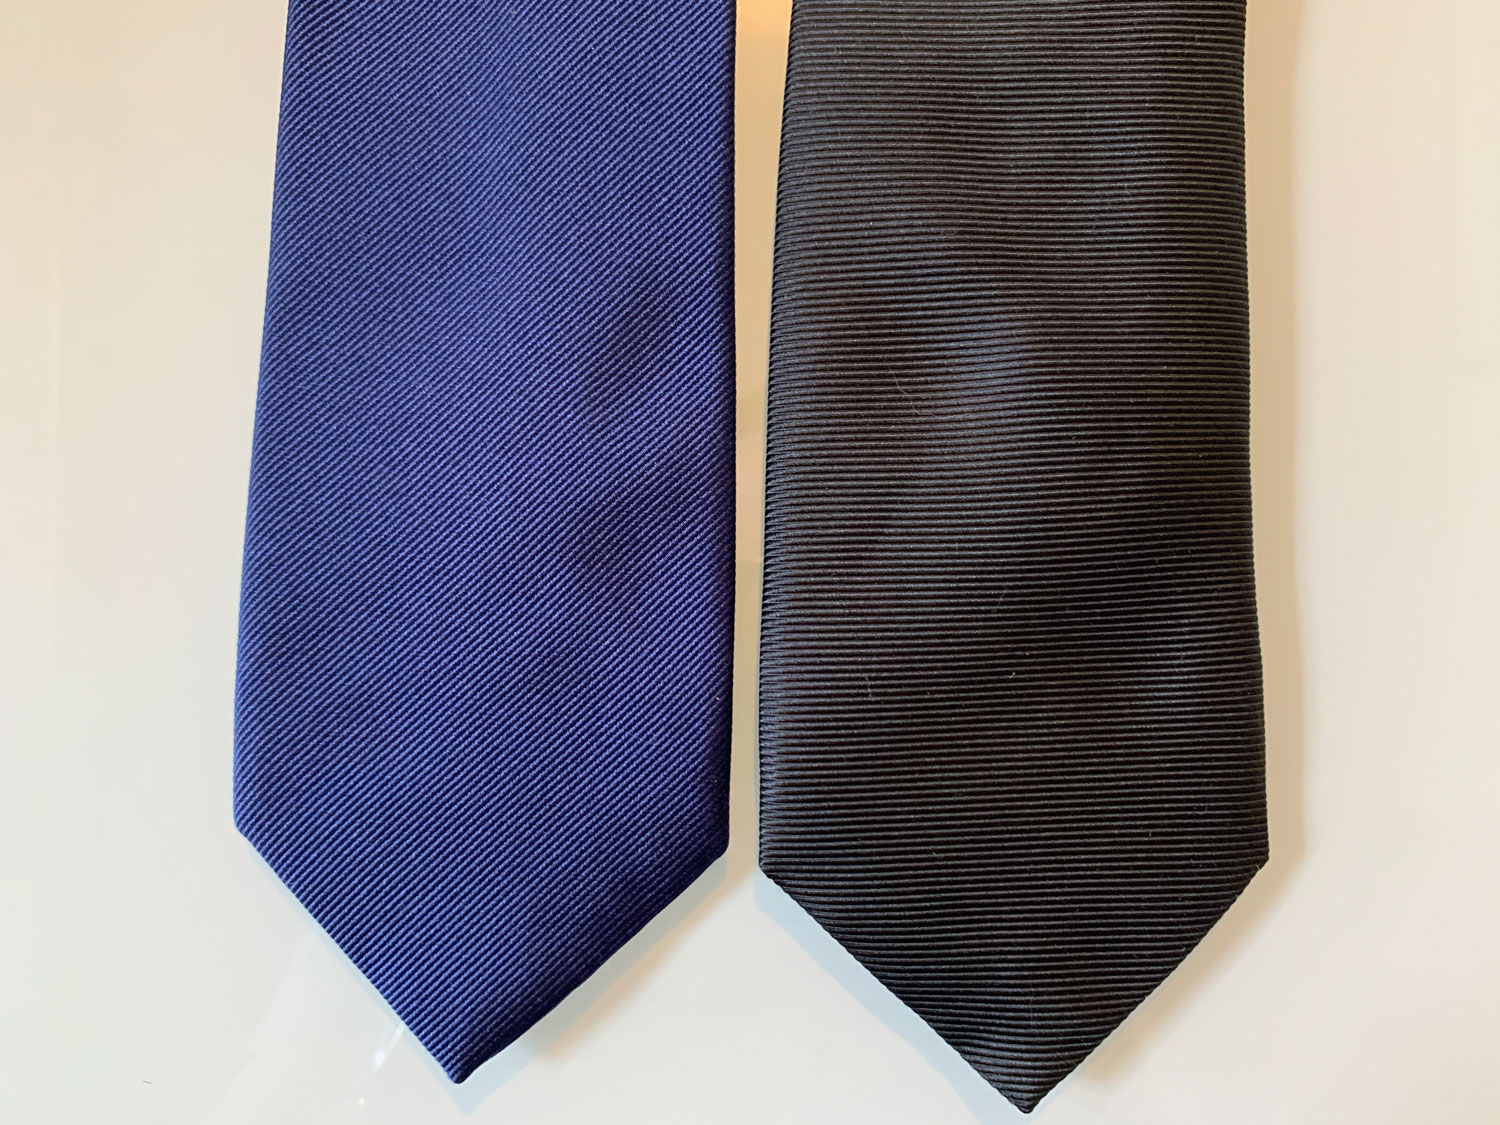 Thomas Pink and Tom ford ties next to each other